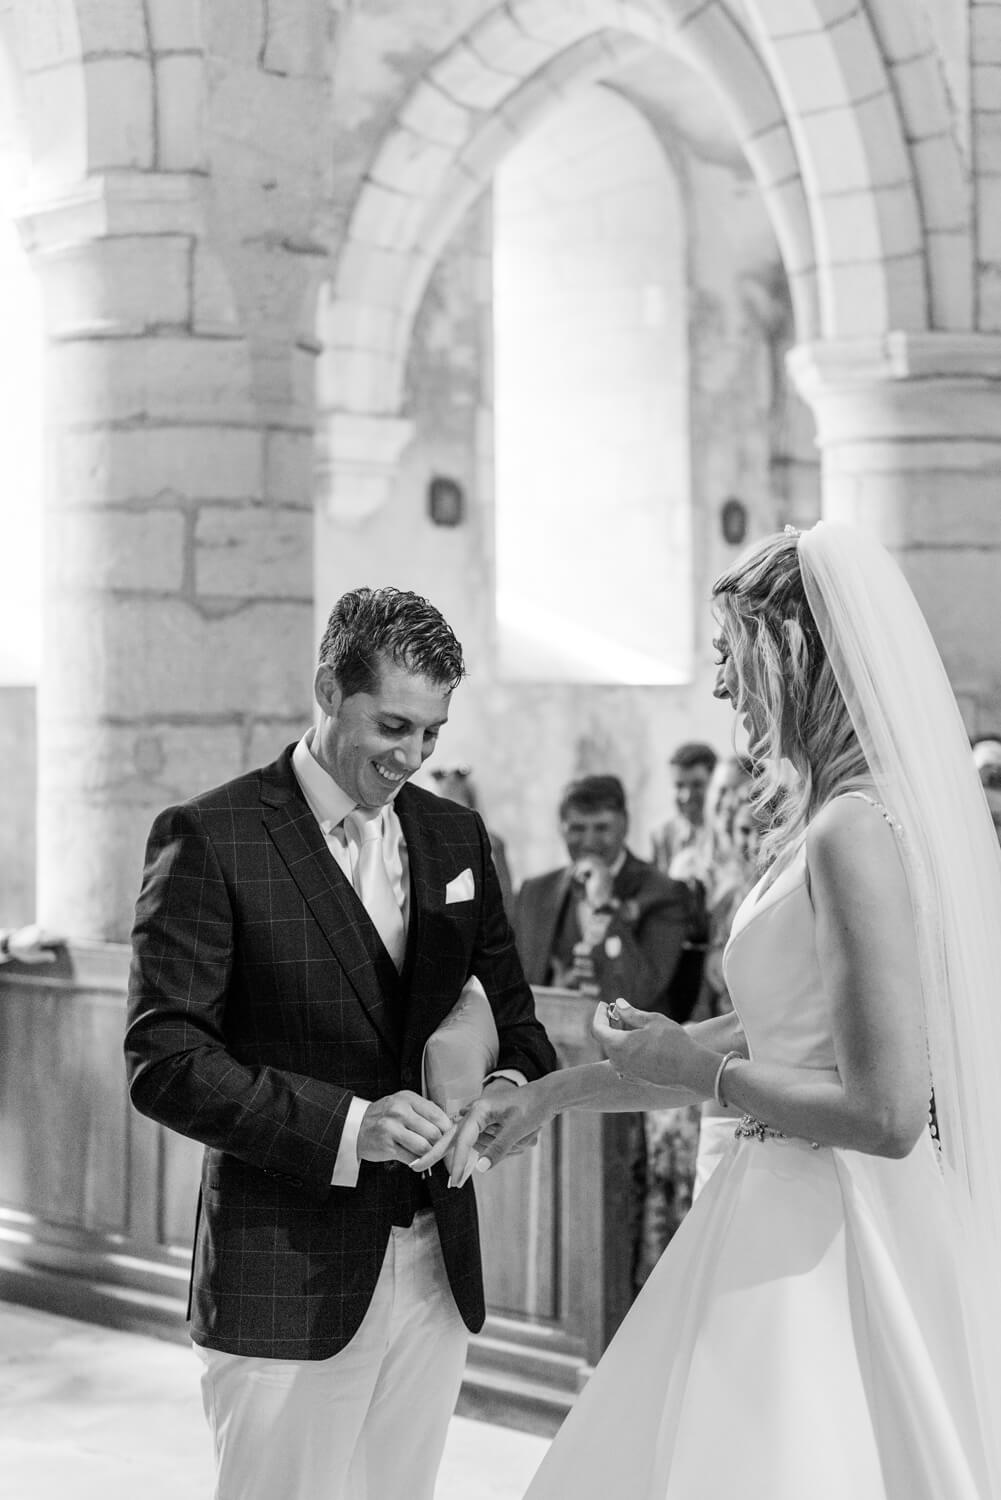 A bride and groom getting married at their destination wedding in a church in France